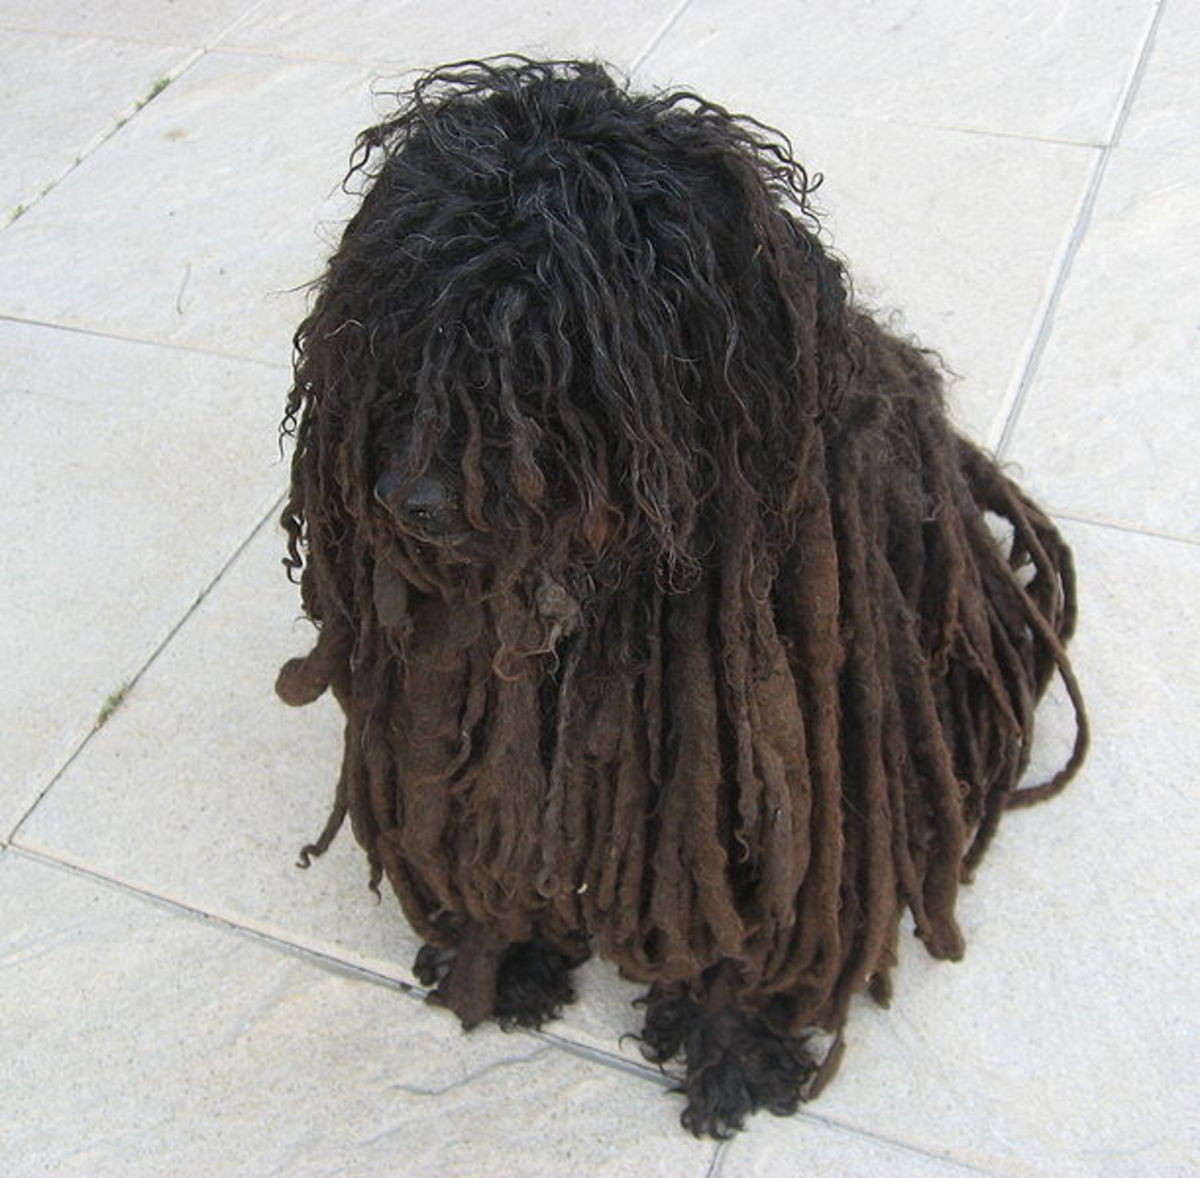 The Hungarian Puli´s coat falls into cords even without special grooming.